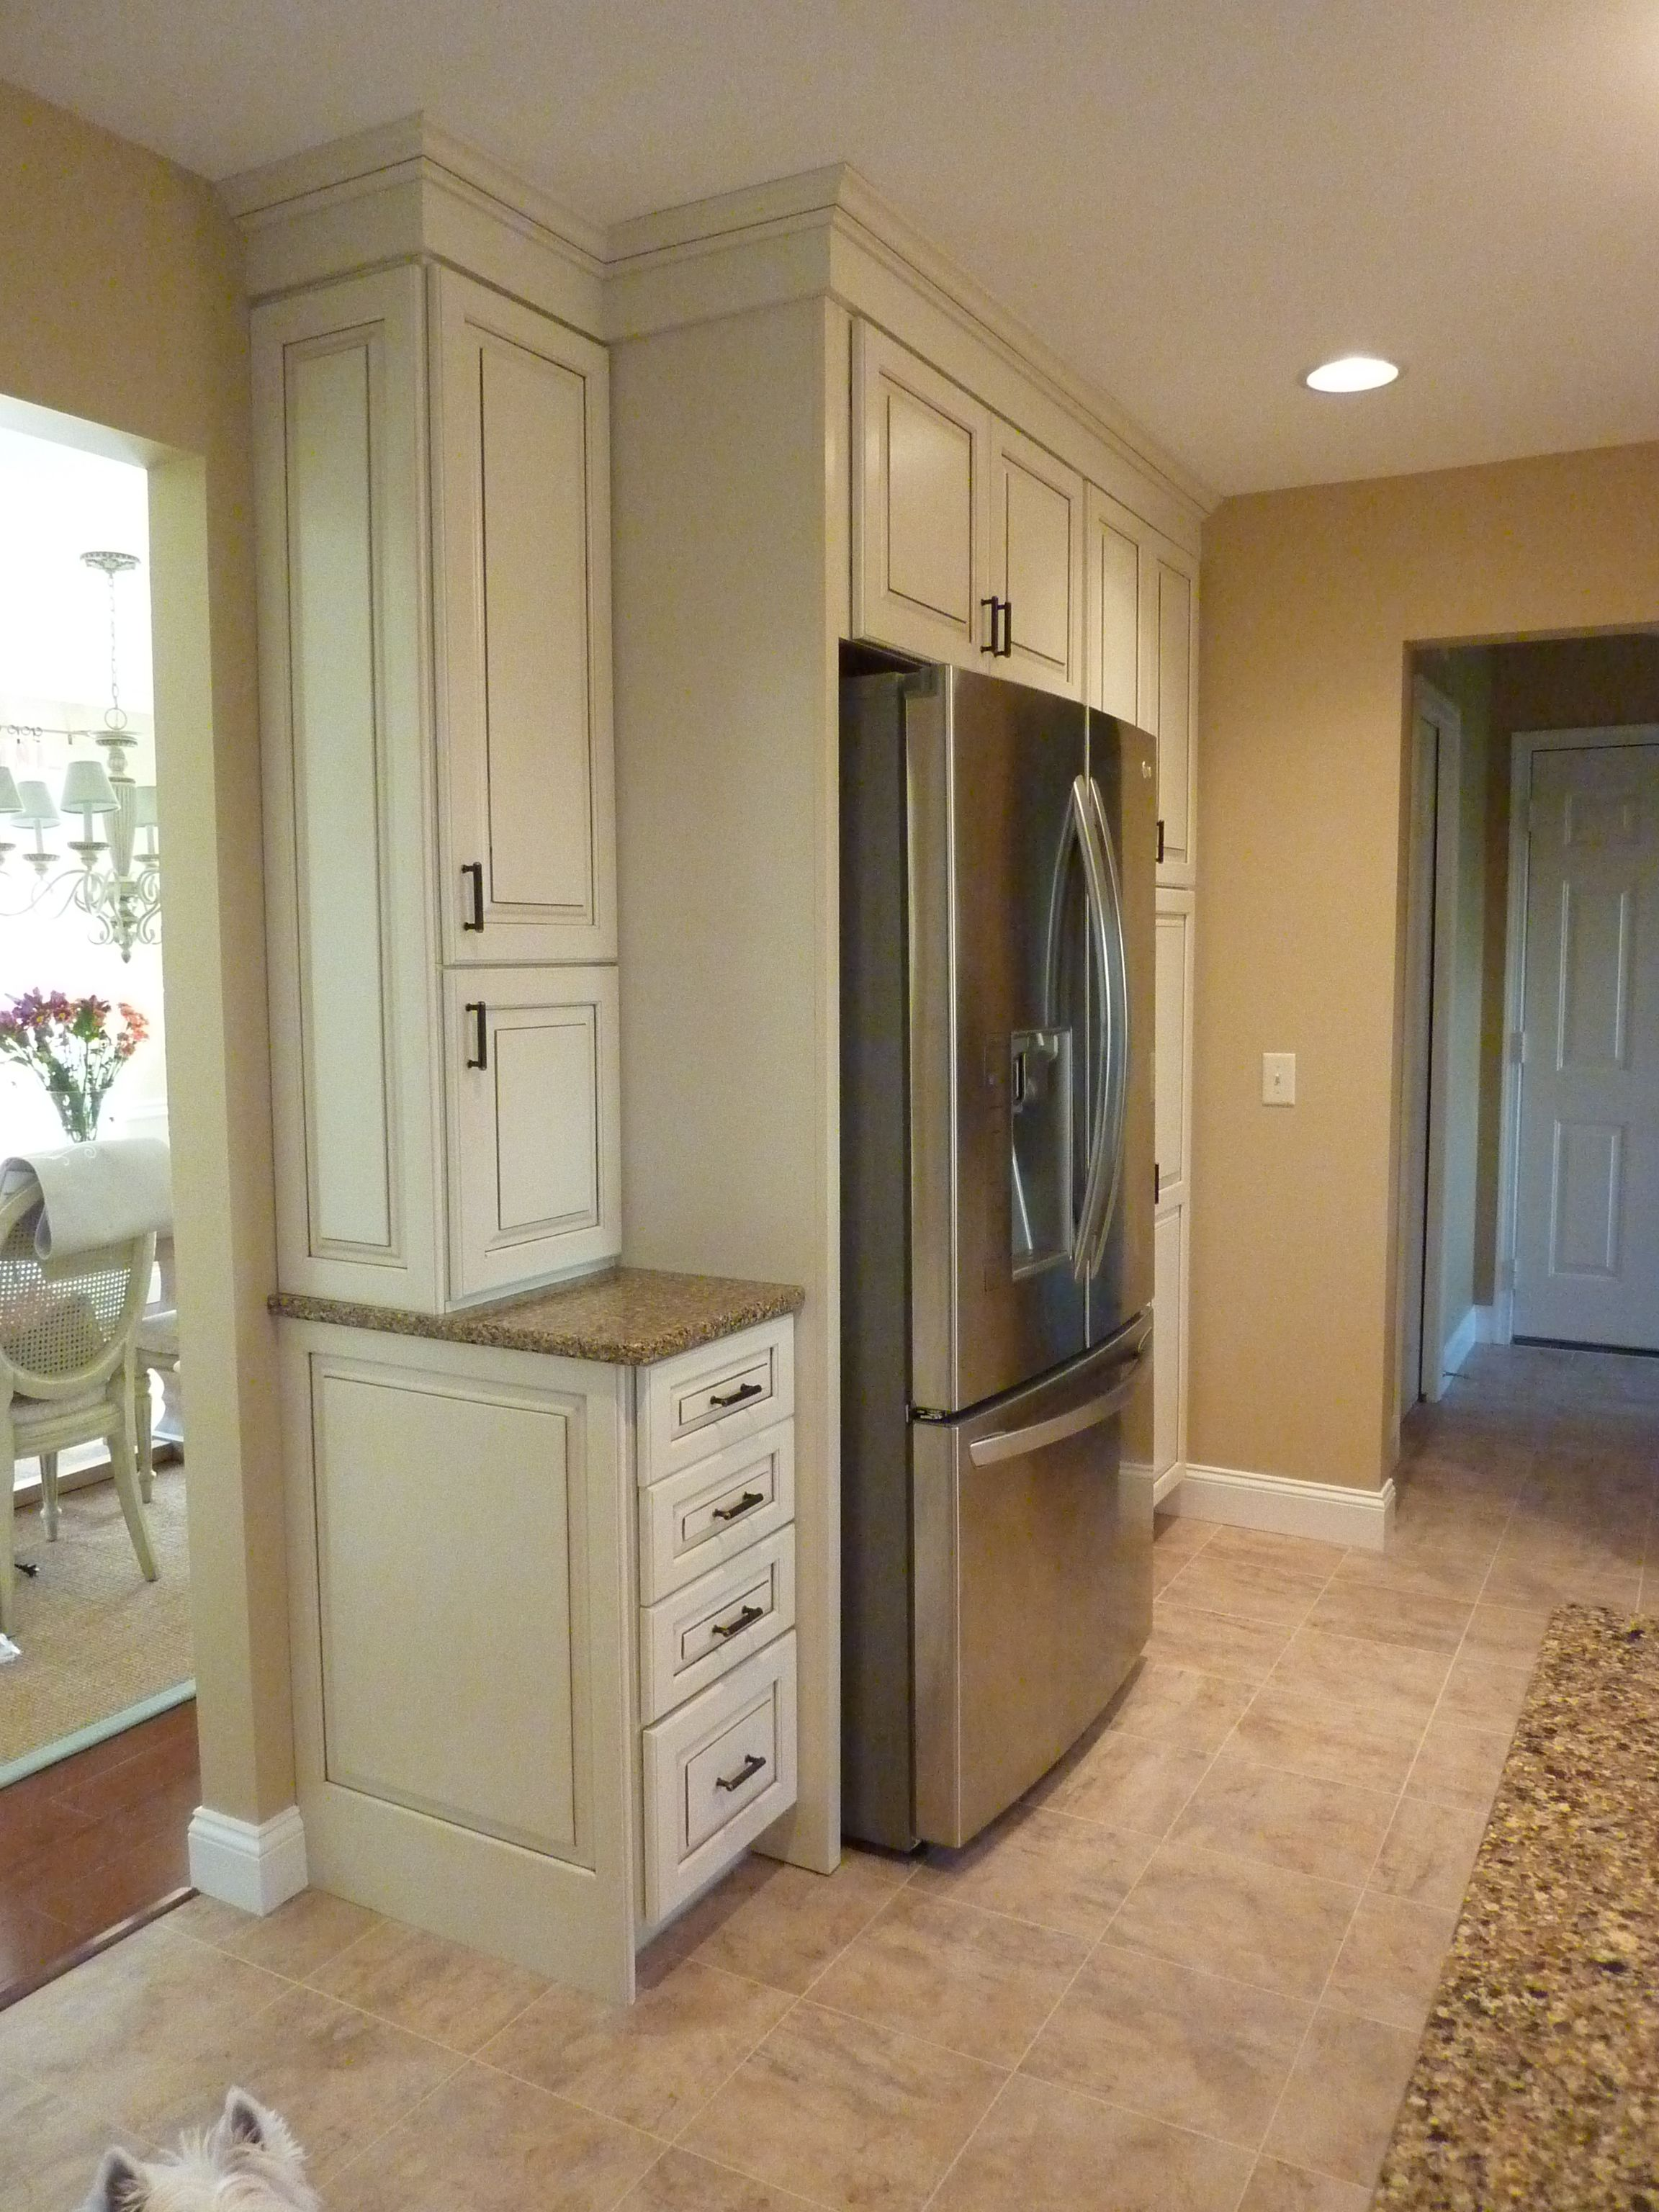 Pinterest Cabinets Kitchen Lots Of Storage Kraftmaid Marquette White Cabinets With